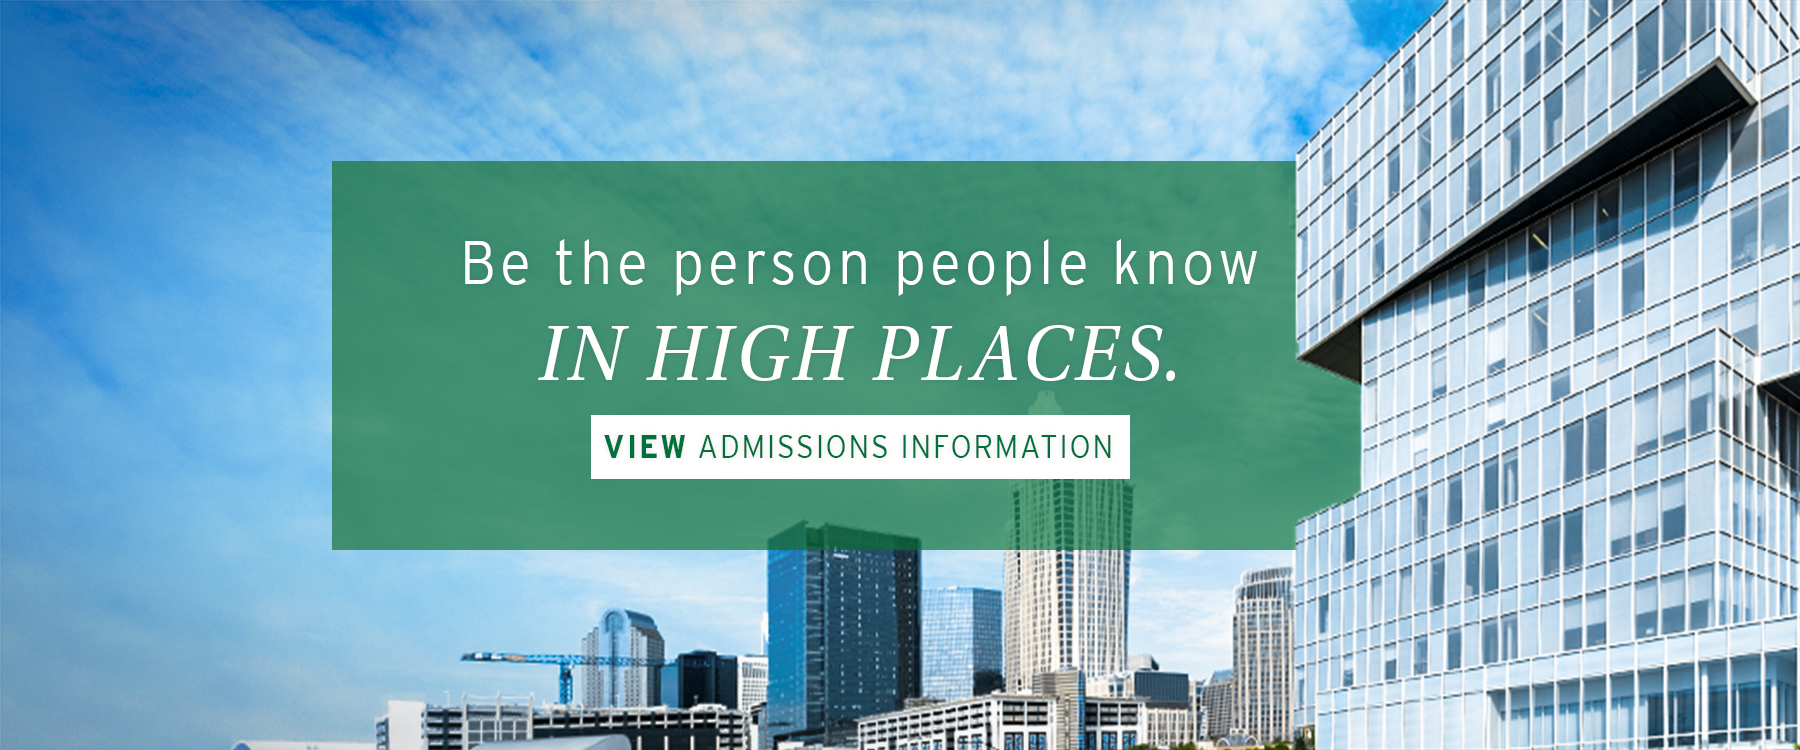 View Admissions Information